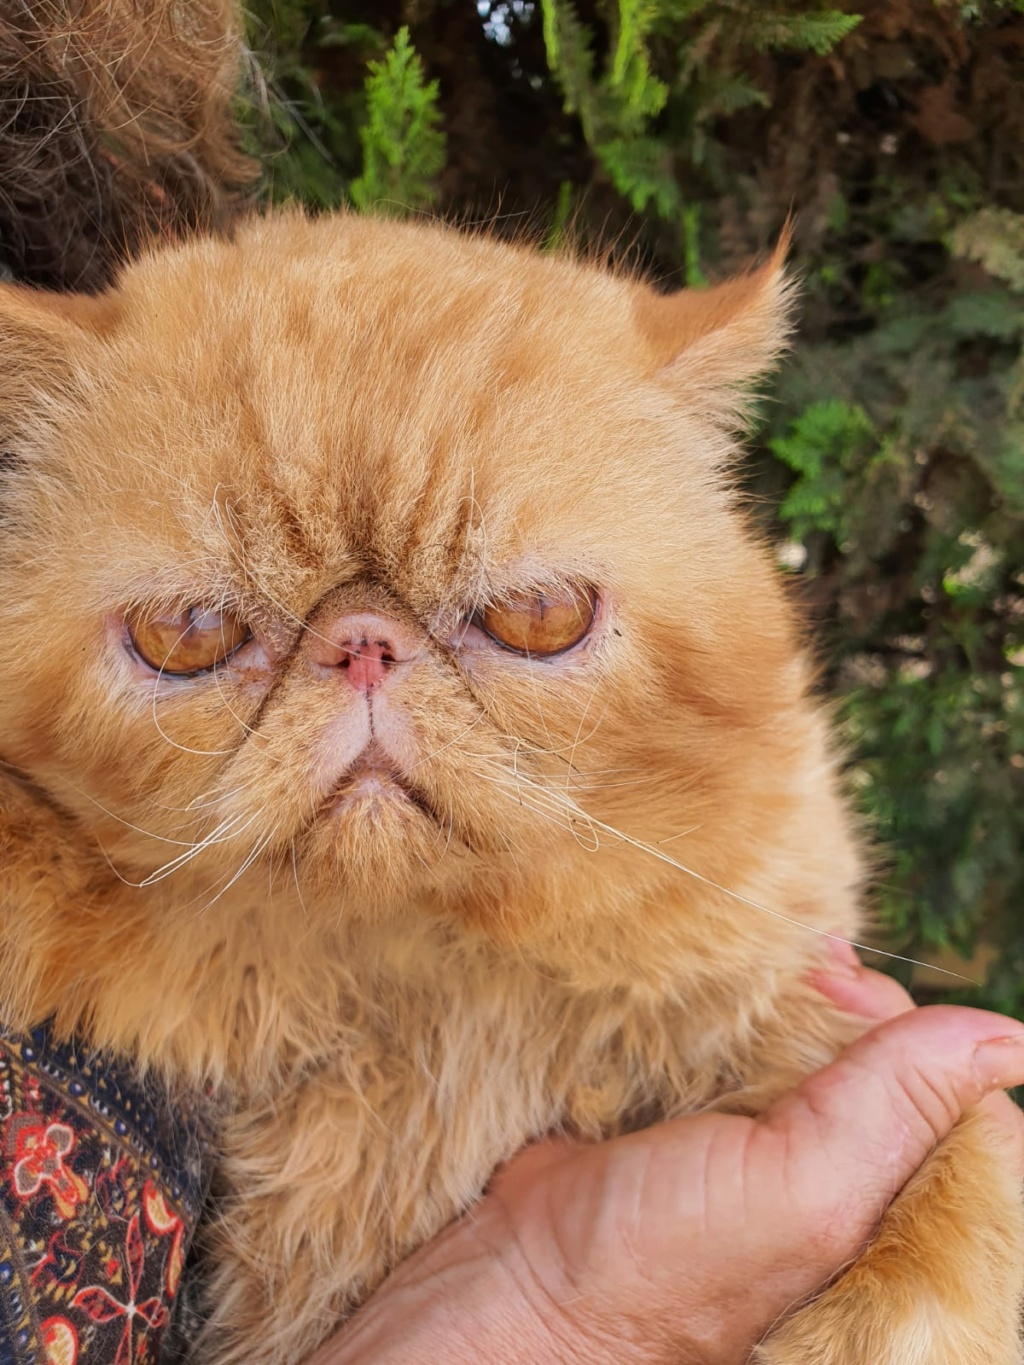 ISIDORO - XEXOTIC SHORTHAIR - ROUX - (MAM) Whats686